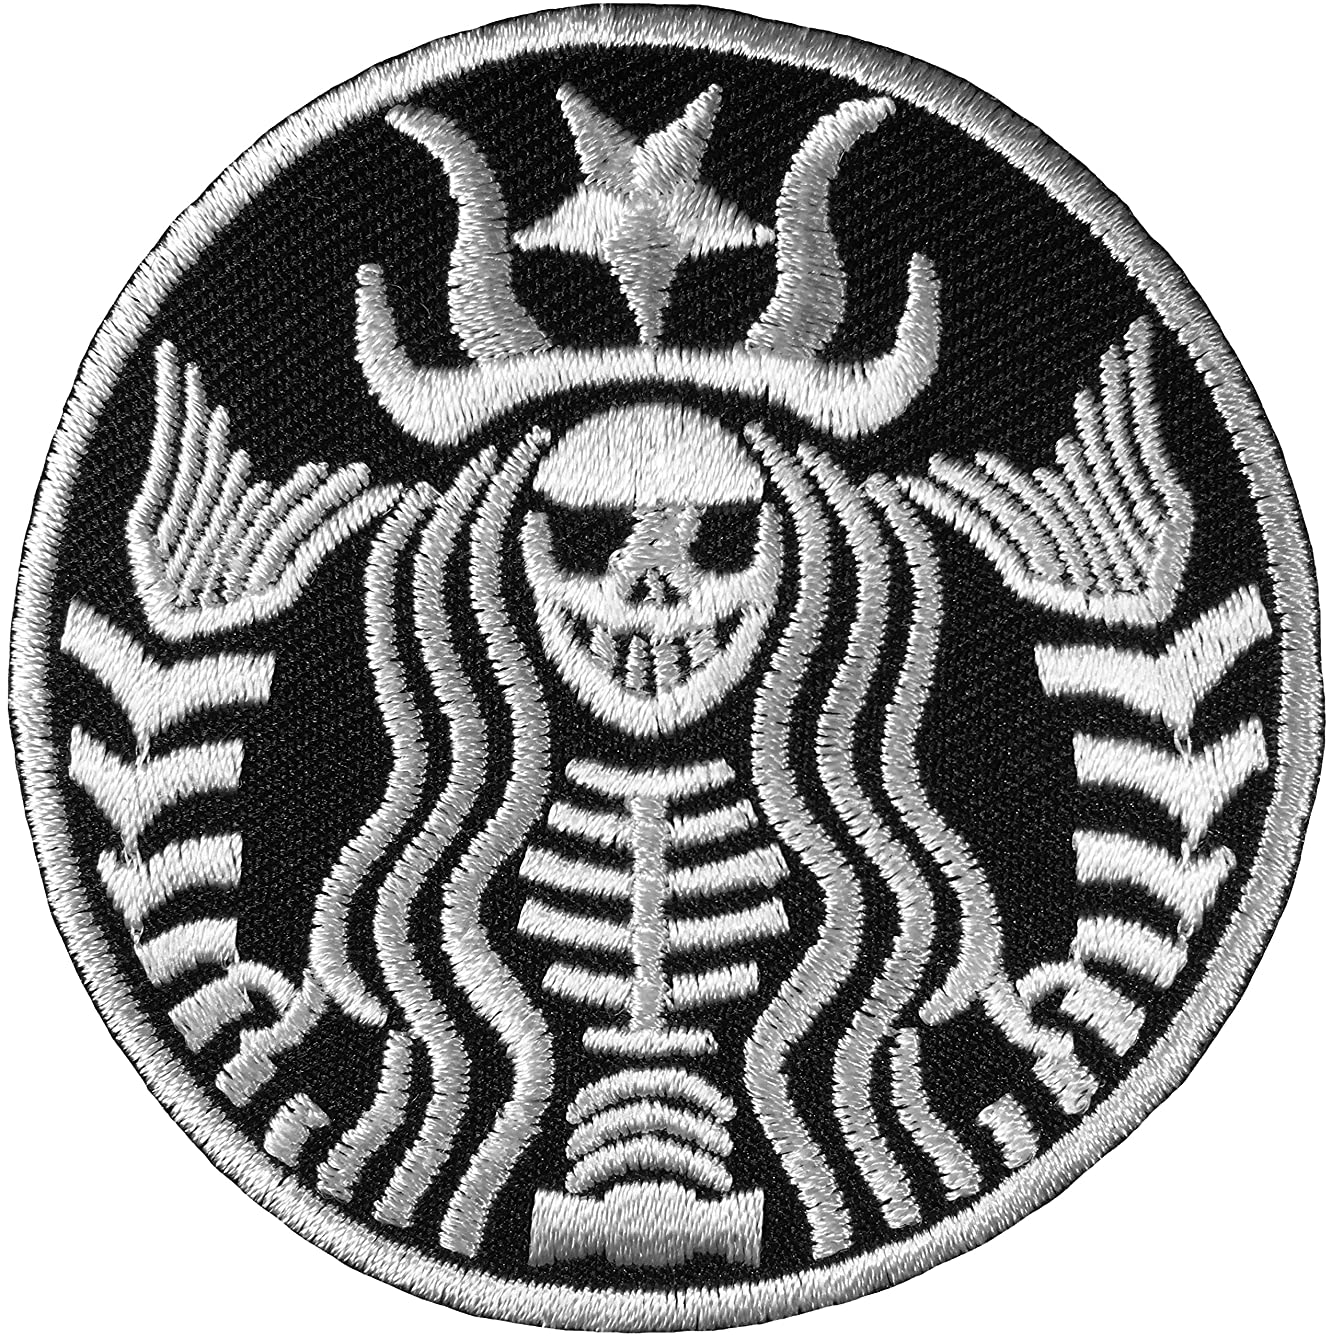 Dead Mermaid Skull Skeleton Zombie Halloween Sewing Iron on Embroidered Patch - Black (IRON-MERMAID-BOR-WH)